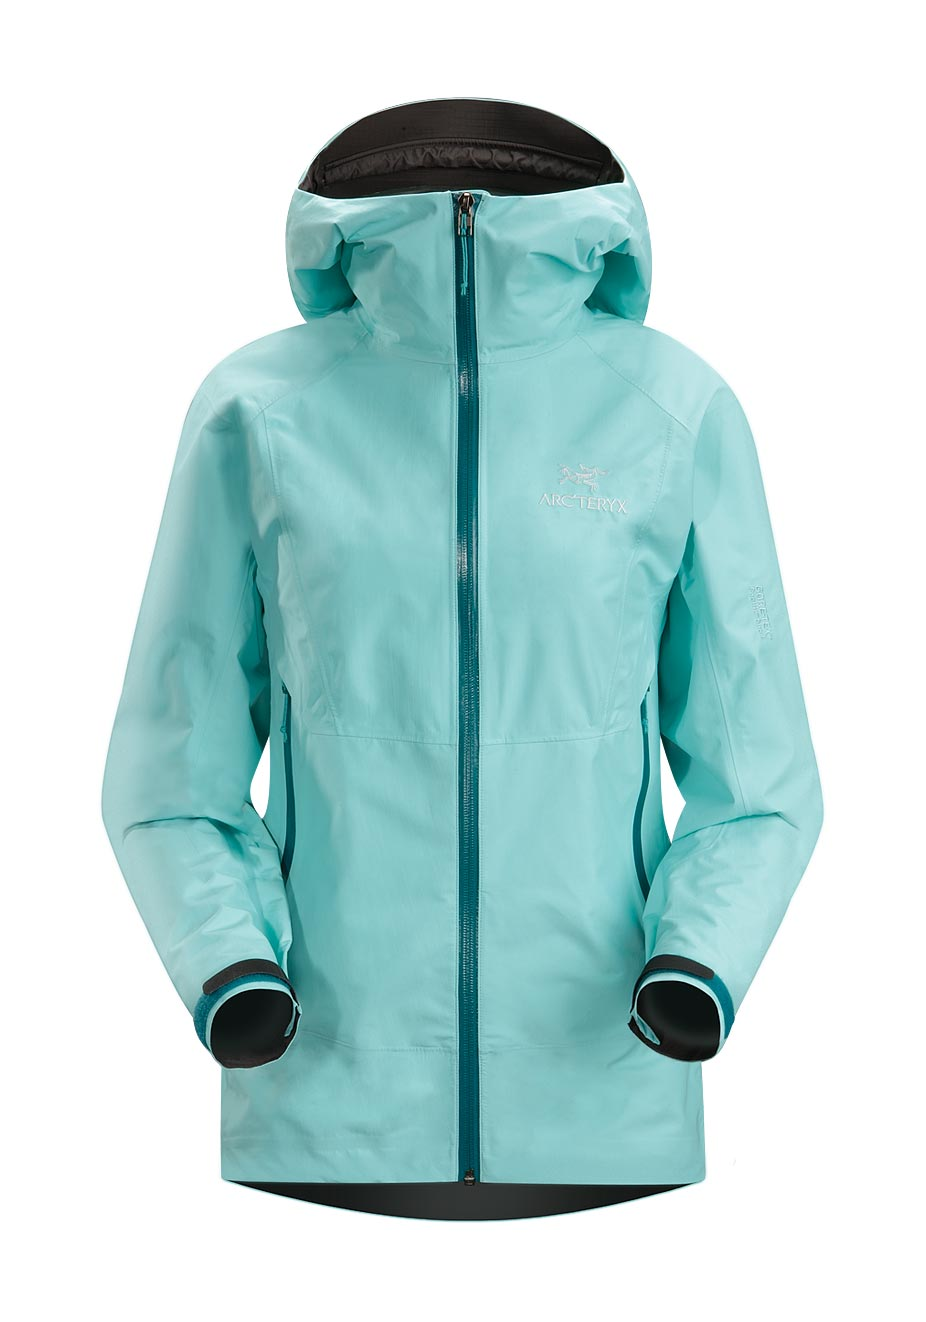 Arcteryx Blue Opal Beta SL Jacket